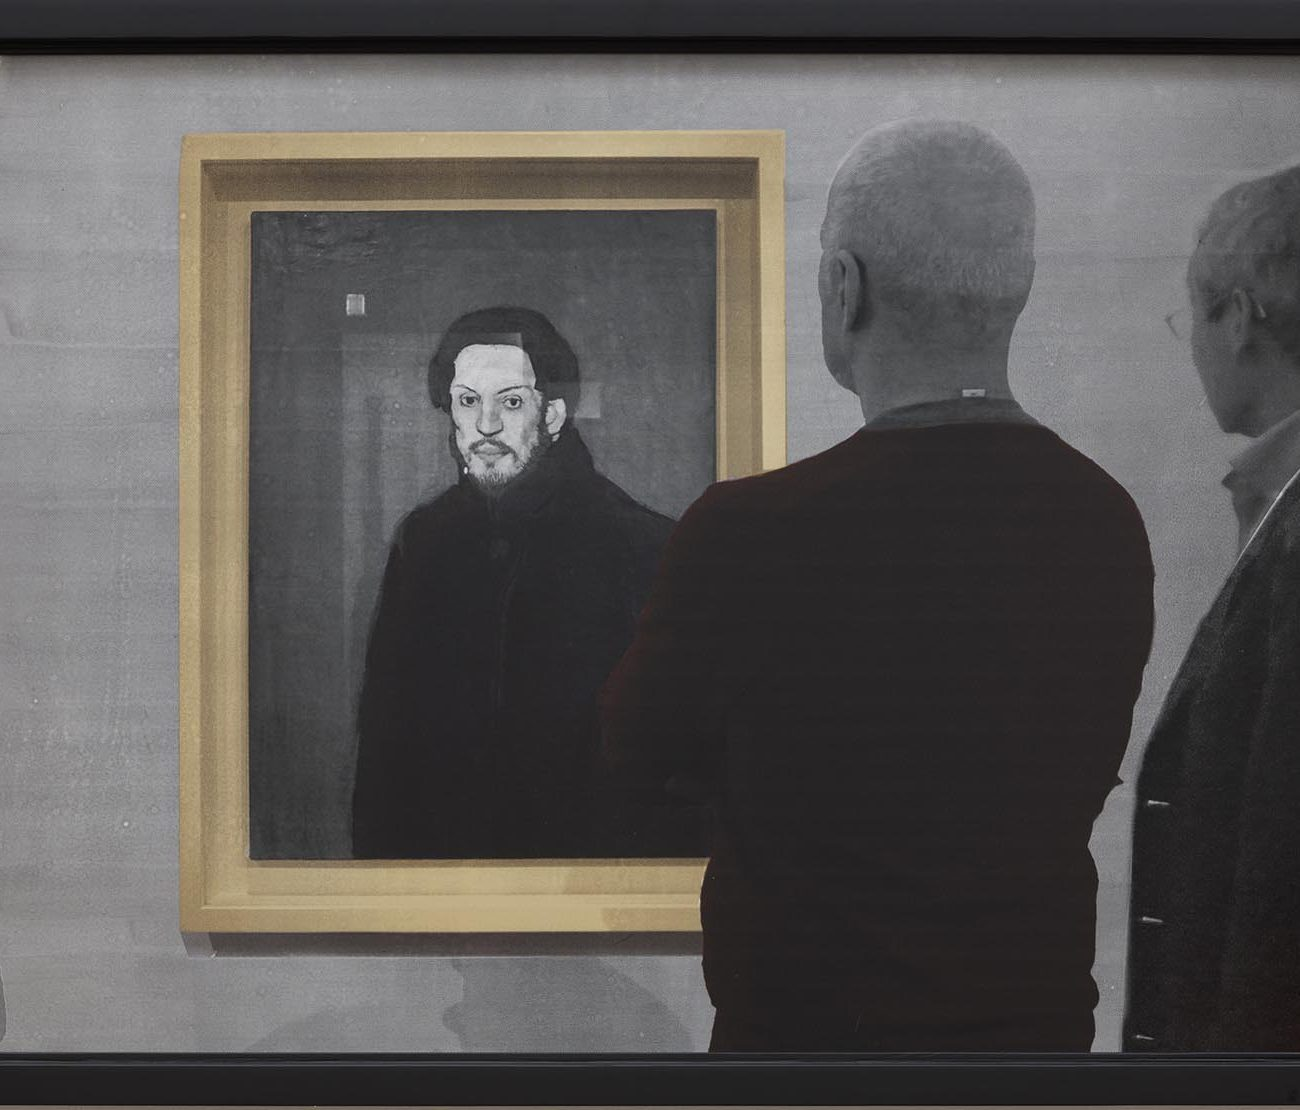 Dialogue (with Picasso), 2017 by Hongshik KIM 김홍식 작가